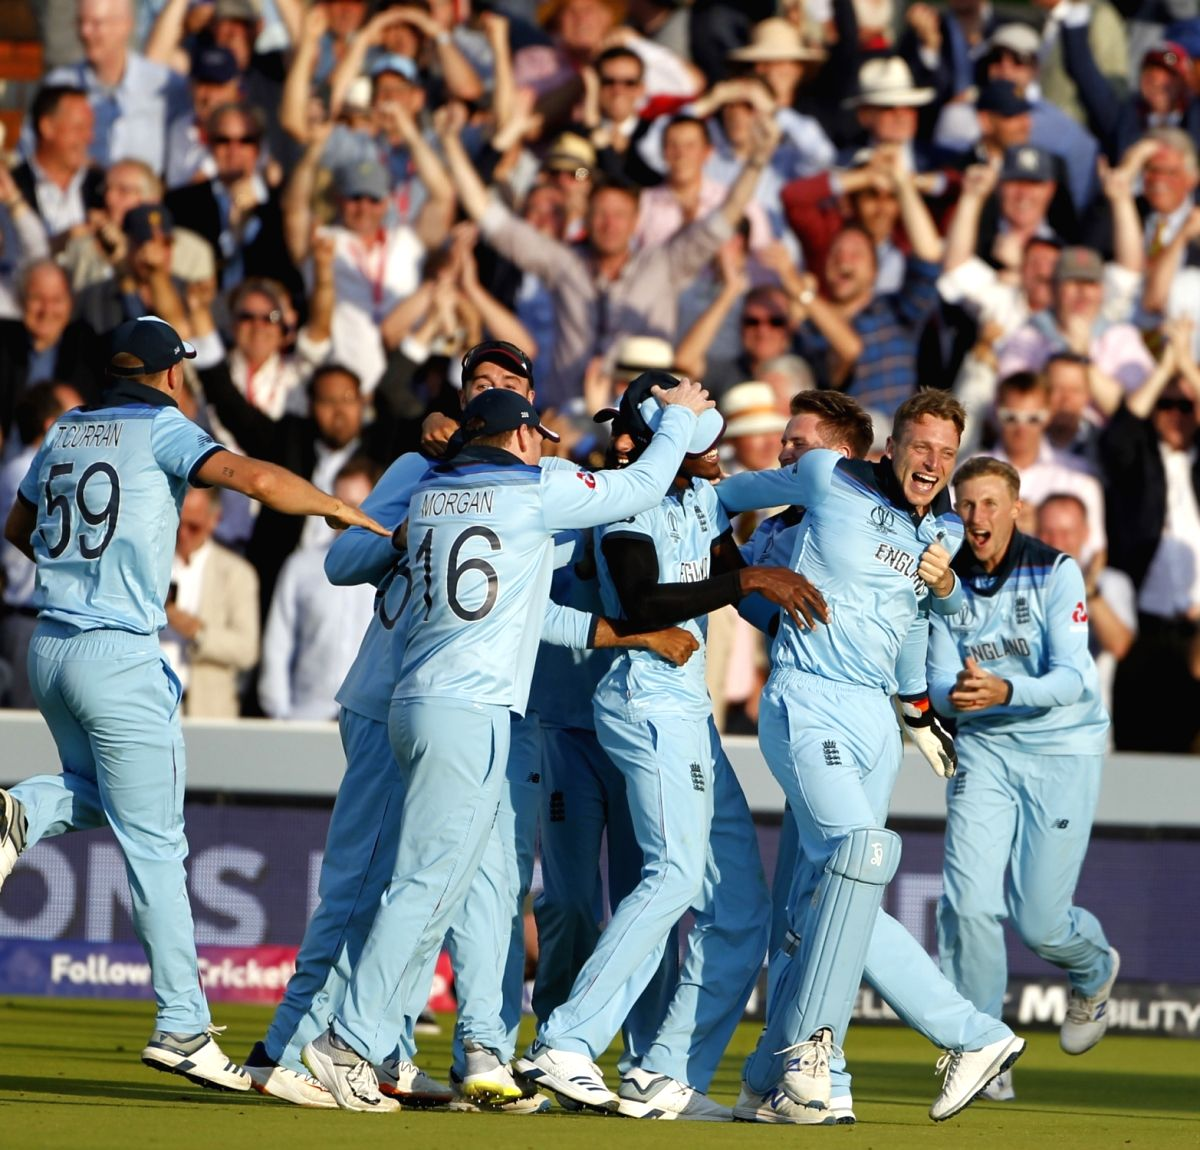 London: England players celebrate after winning the final match of the 2019 World Cup against New Zealand at the Lord's Cricket Stadium in London, England on July 14, 2019. (Photo: Surjeet Yadav/IANS)